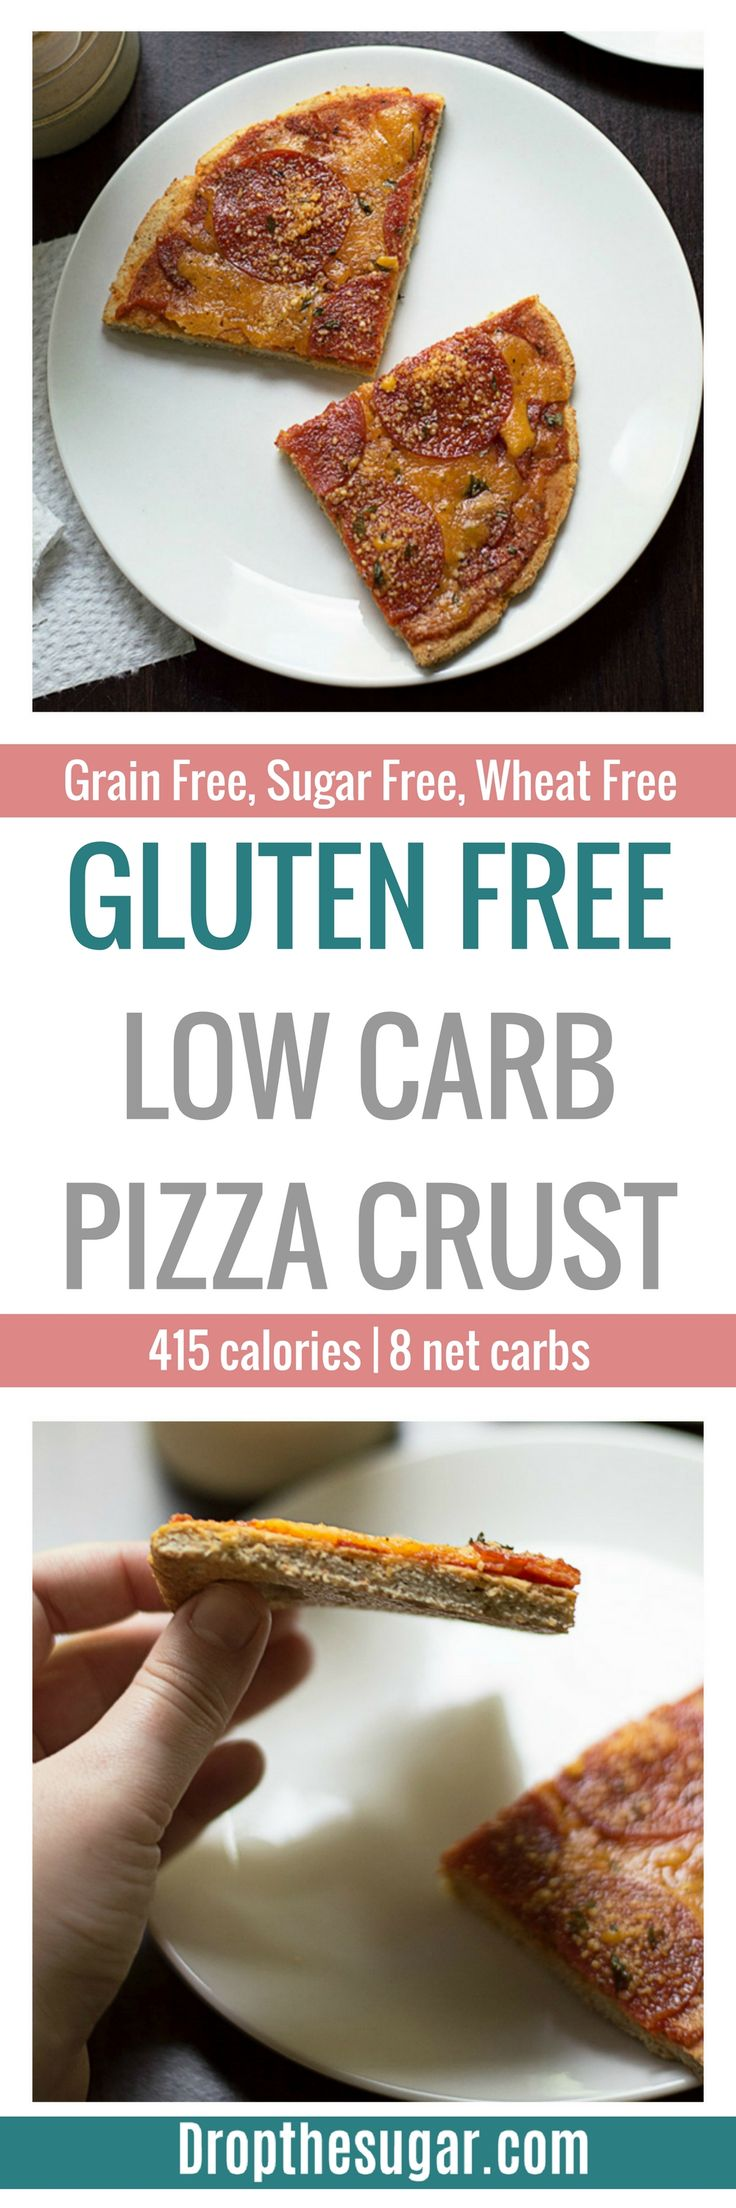 Gluten-Free Almond & Buckwheat Flour Pizza Crust Recipe ...